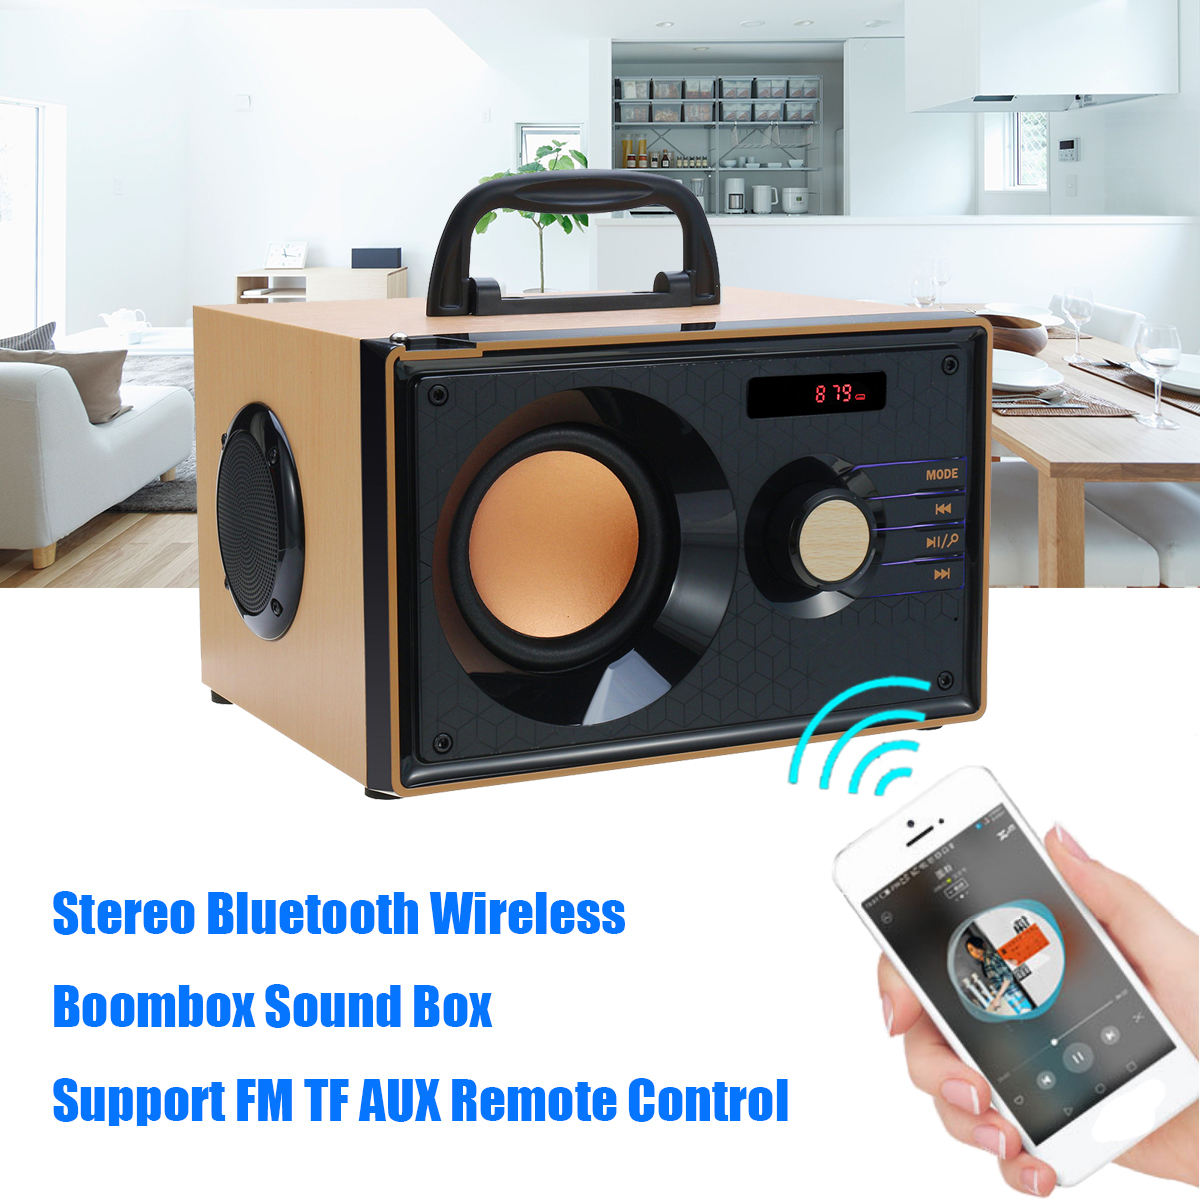 Stereo Bluetooth Speaker Subwoofer Heavy Bass Wireless Big Speakers Boombox Sound Box Support FM TF Home Theater Amplifiers dbigness bluetooth speaker portable speaker wireless bass stereo subwoofer support tf aux boombox hd sound for phone samsung